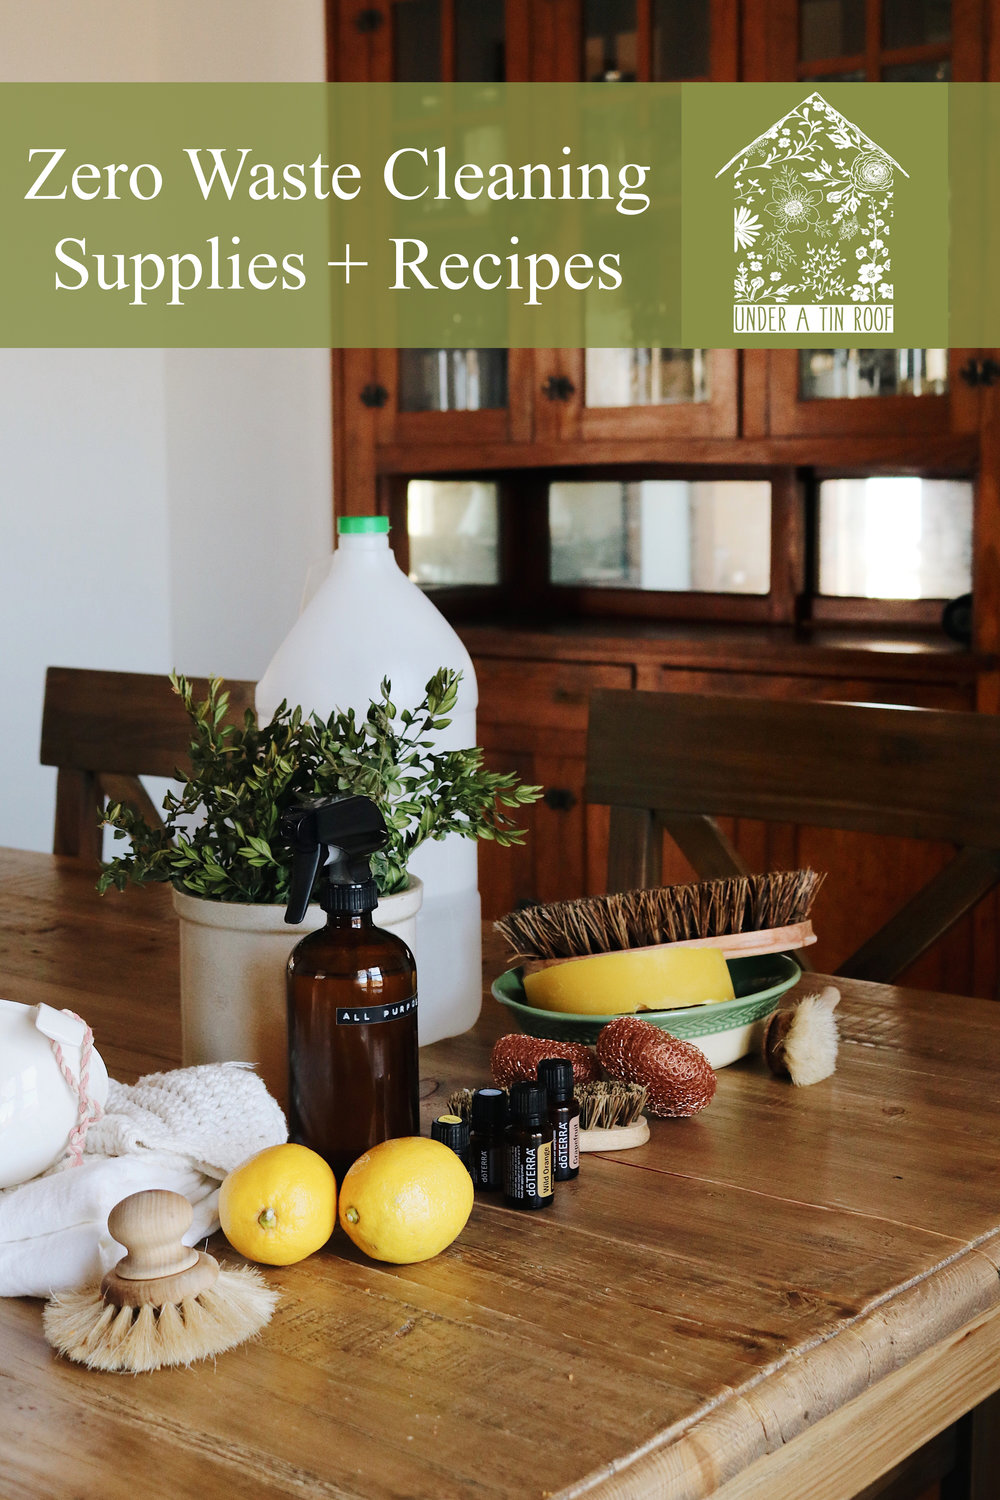 Zero Waste Cleaning Supplies + Recipes - Under A Tin Roof Blog